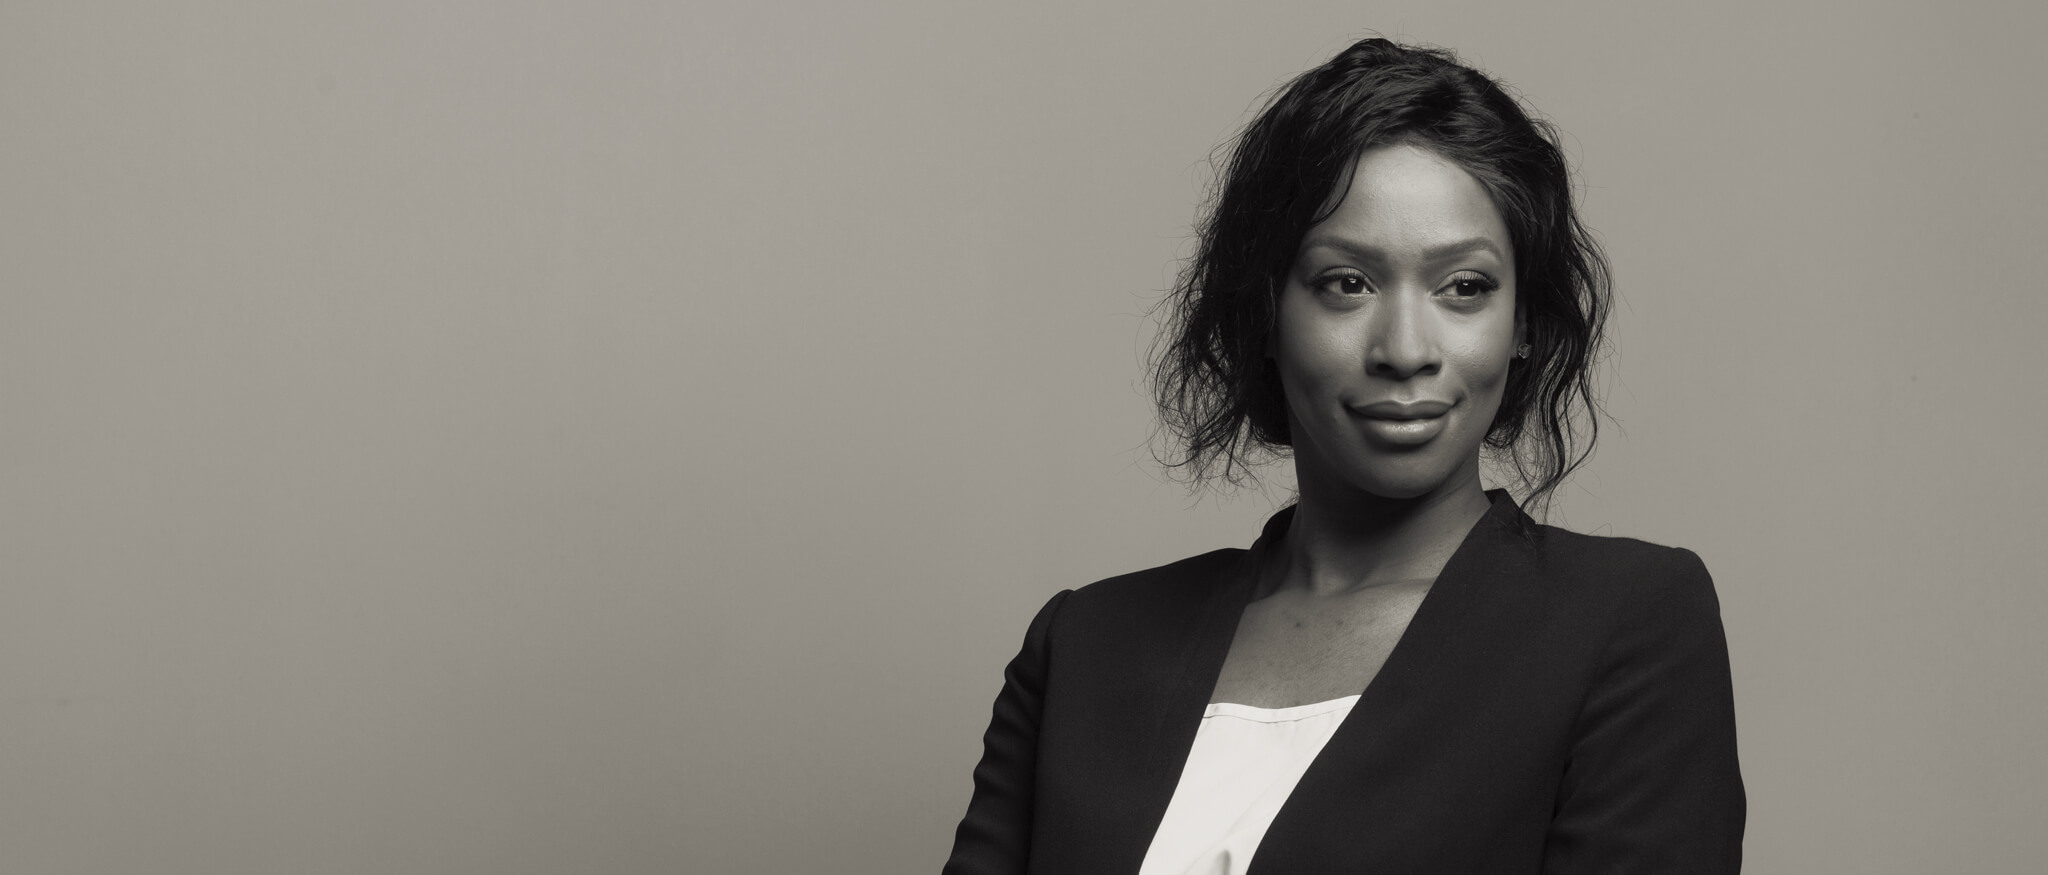 Kezia Daley joining WS features in ePrivateClient and EUBankers